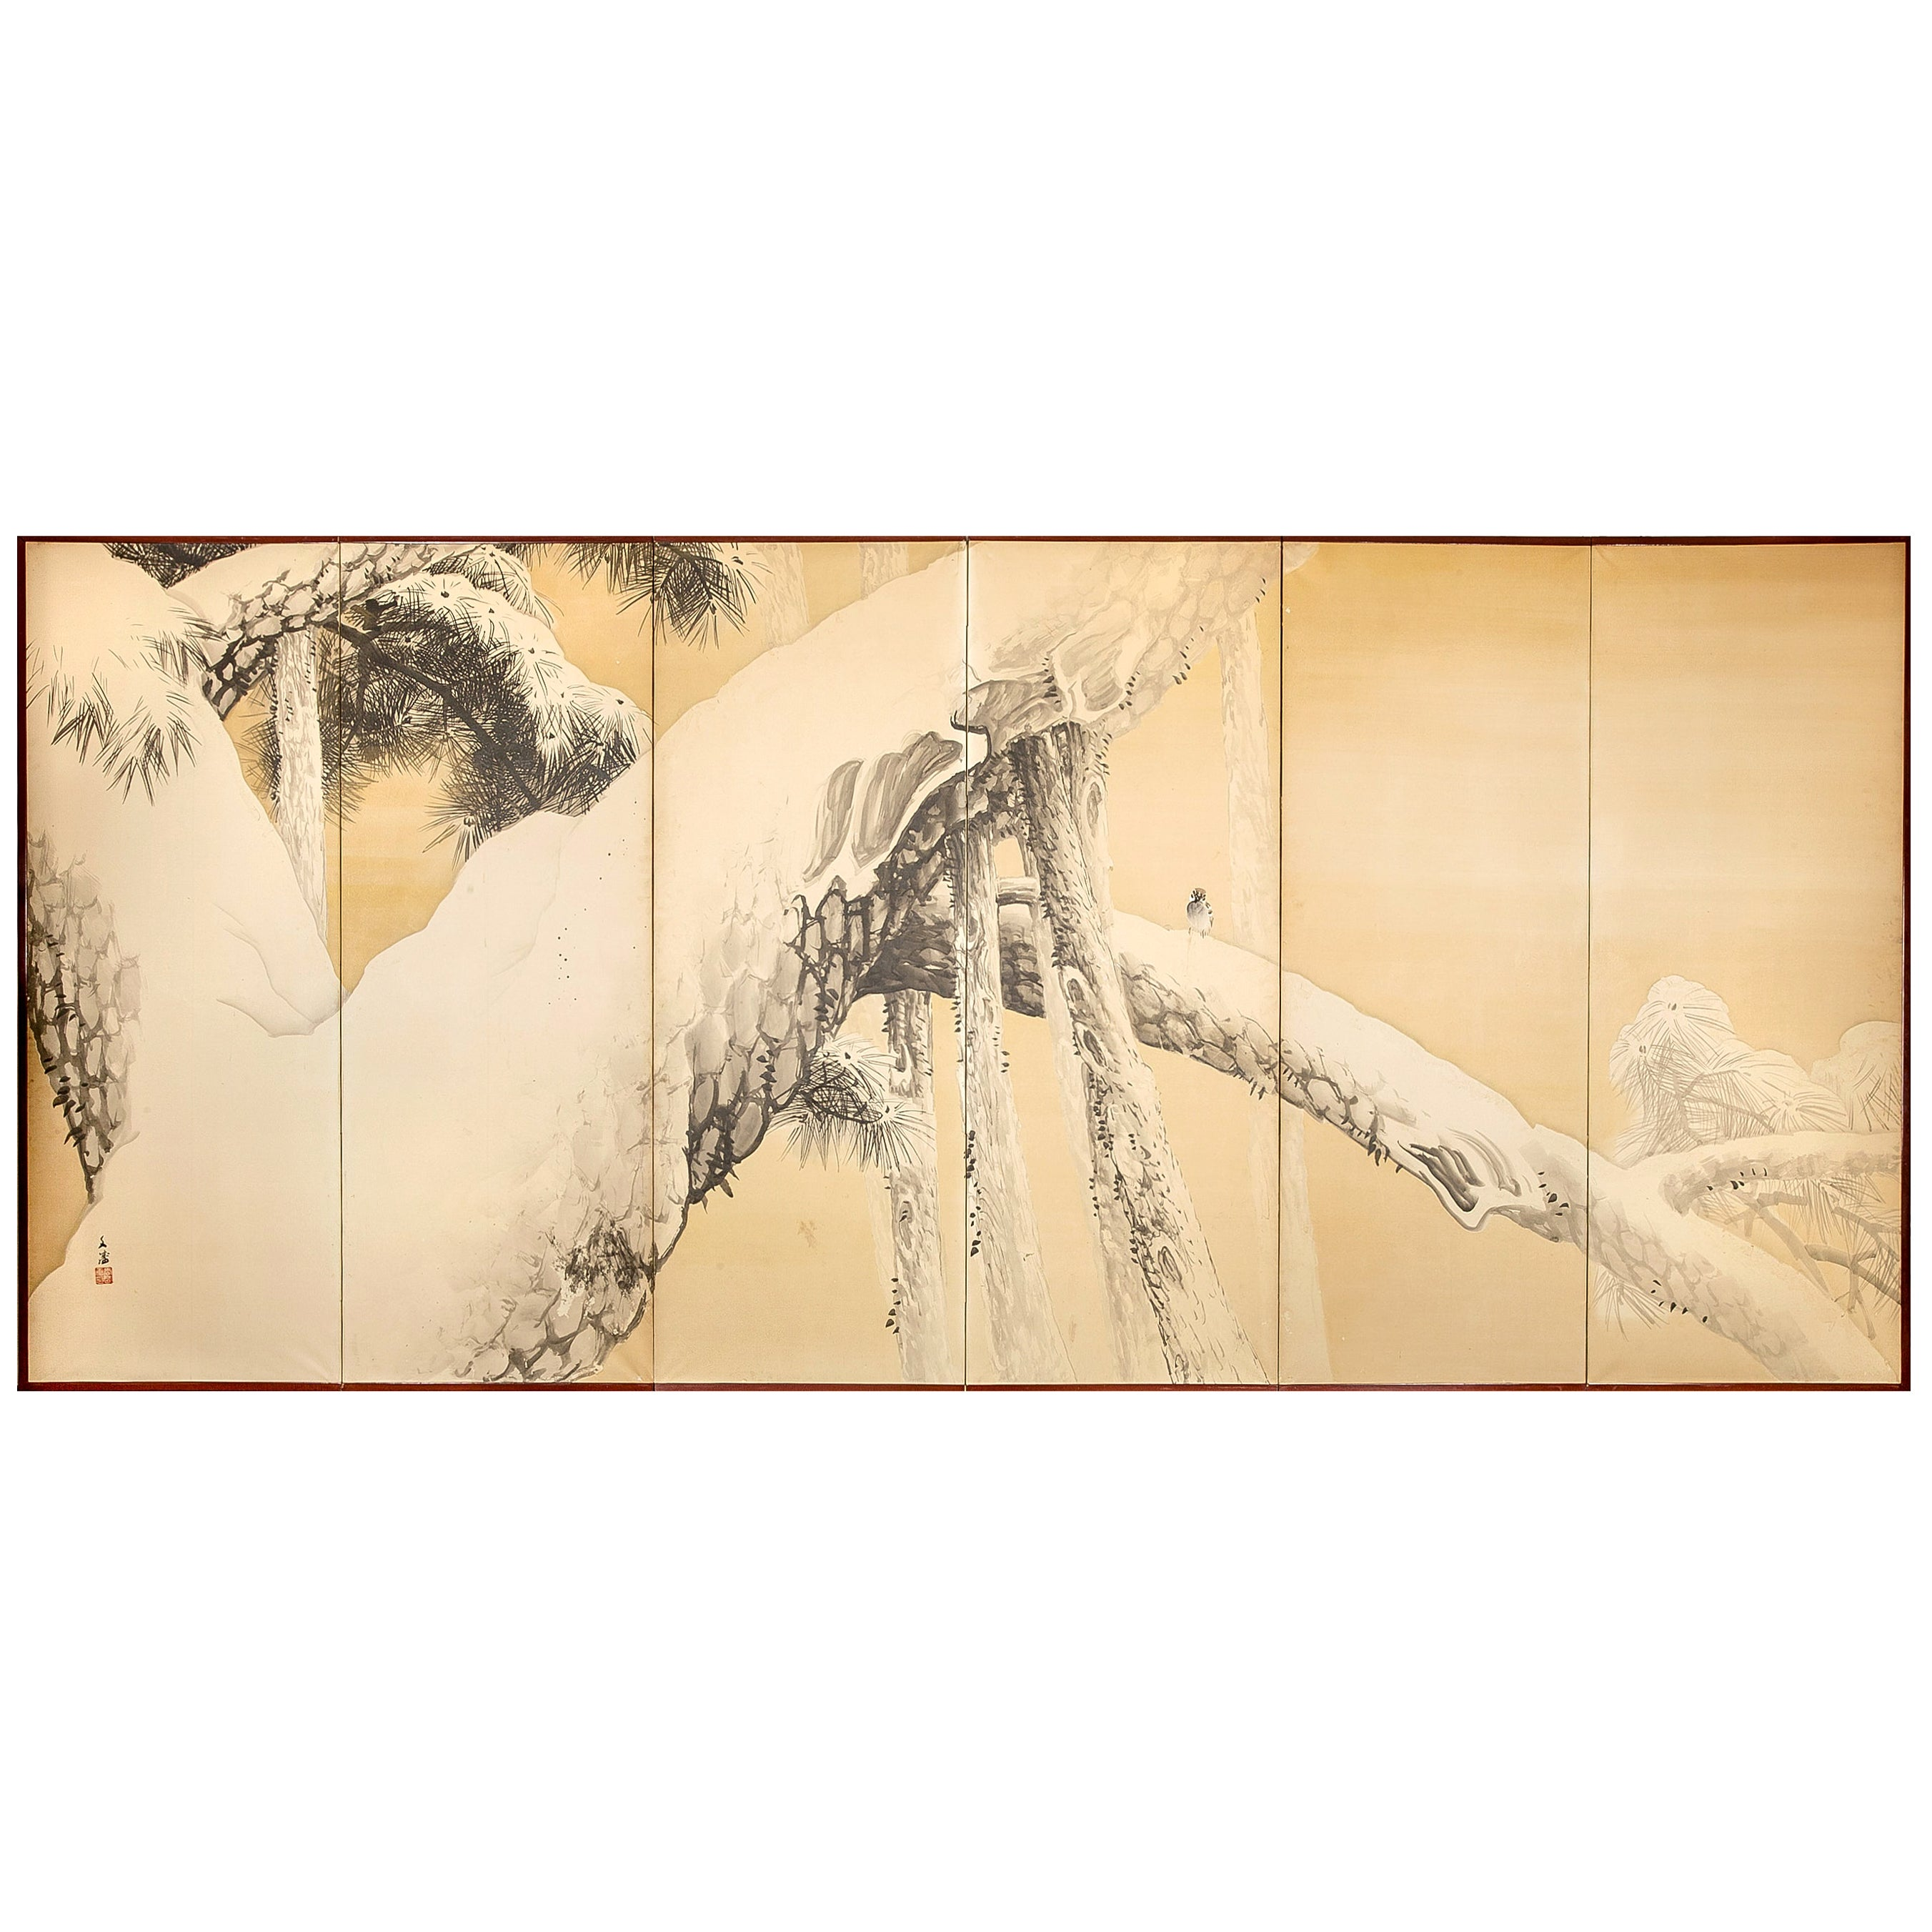 Japanese Six-Panel Screen, Pine in Winter